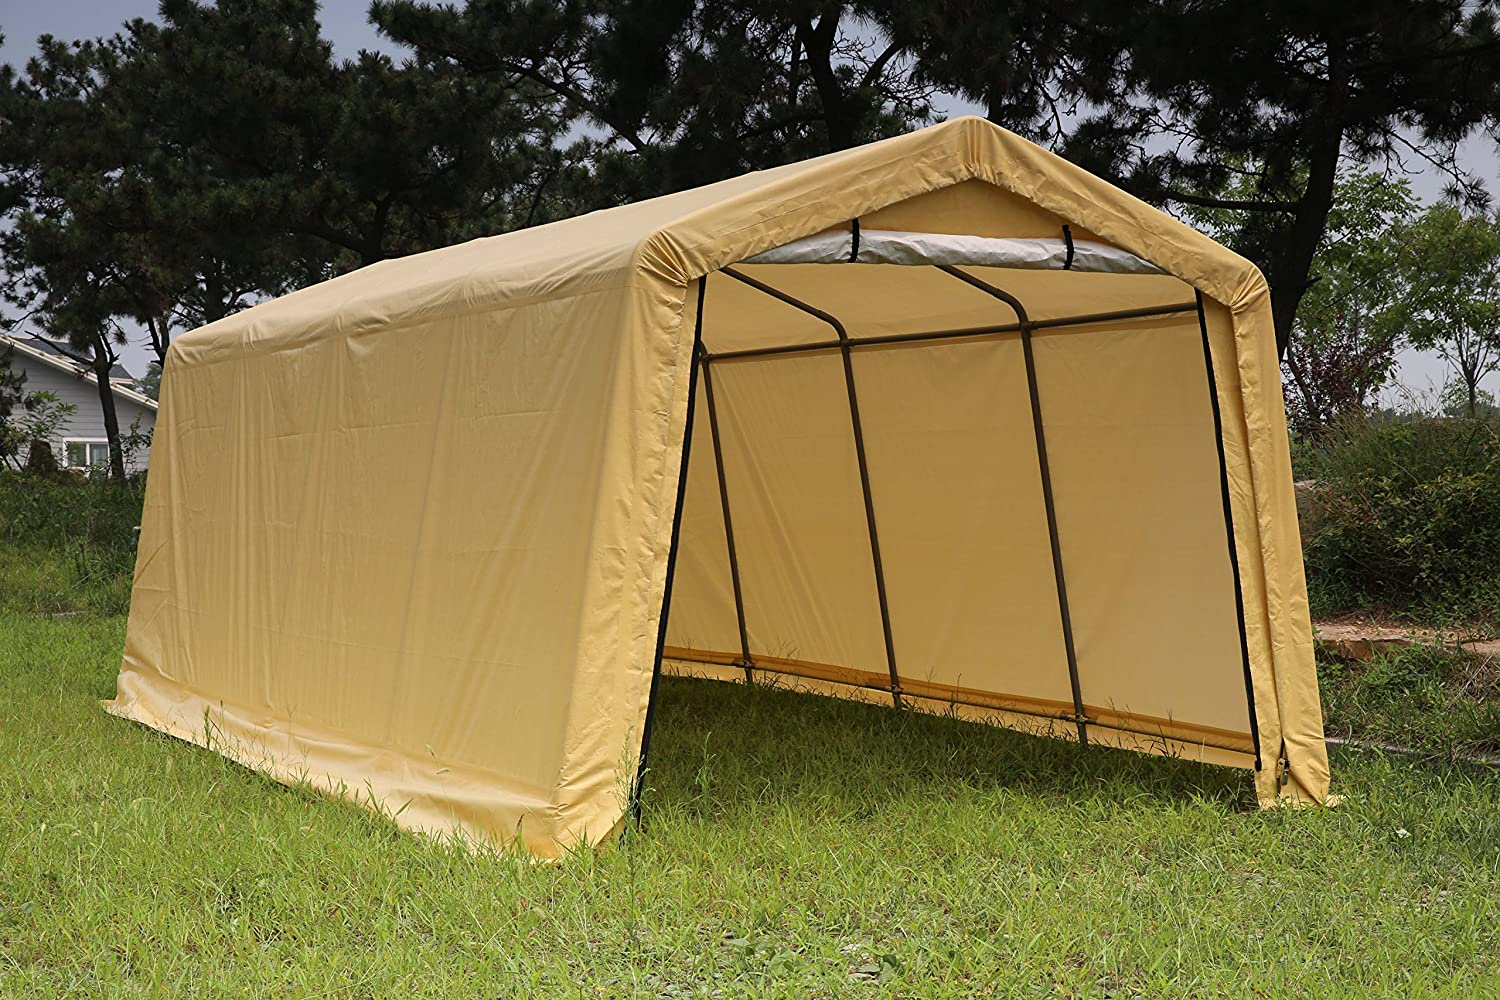 Weather Fast 103-1105Y 10x20x8 Feet Portable Shelter Carport One Size Yellow